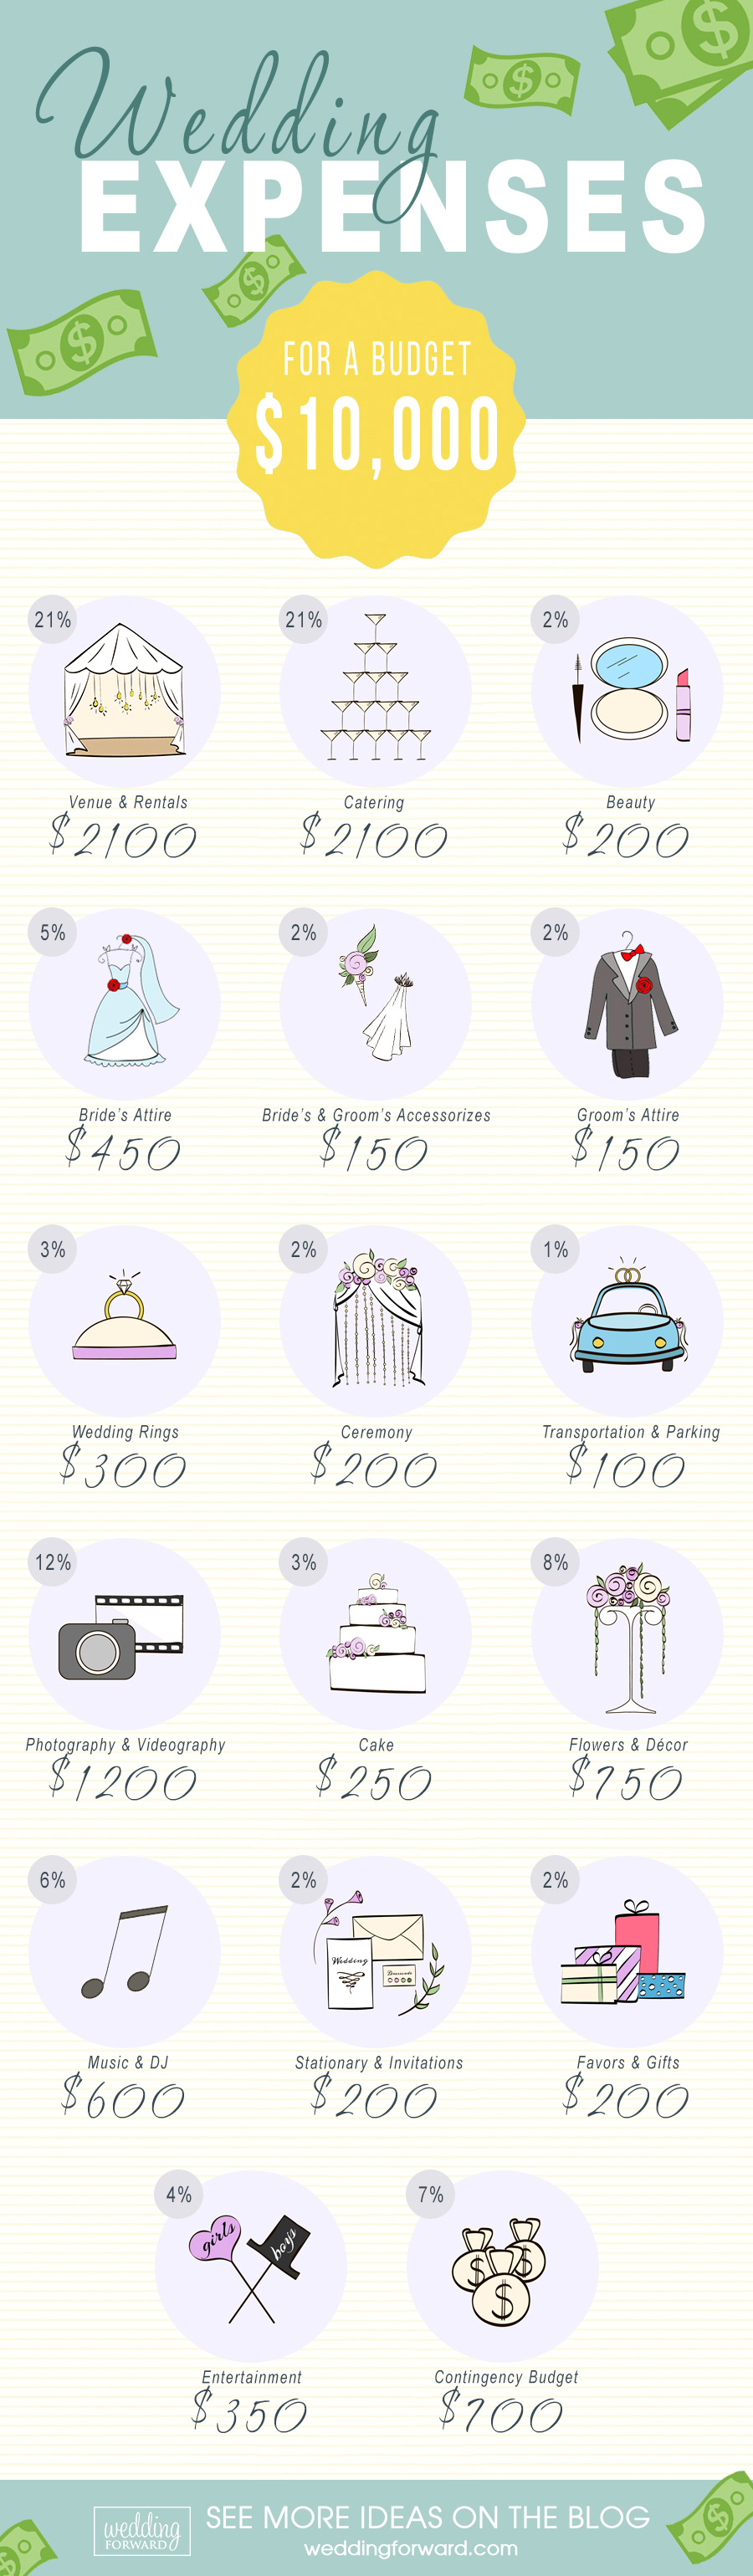 Wedding Expenses For A 10K Budget